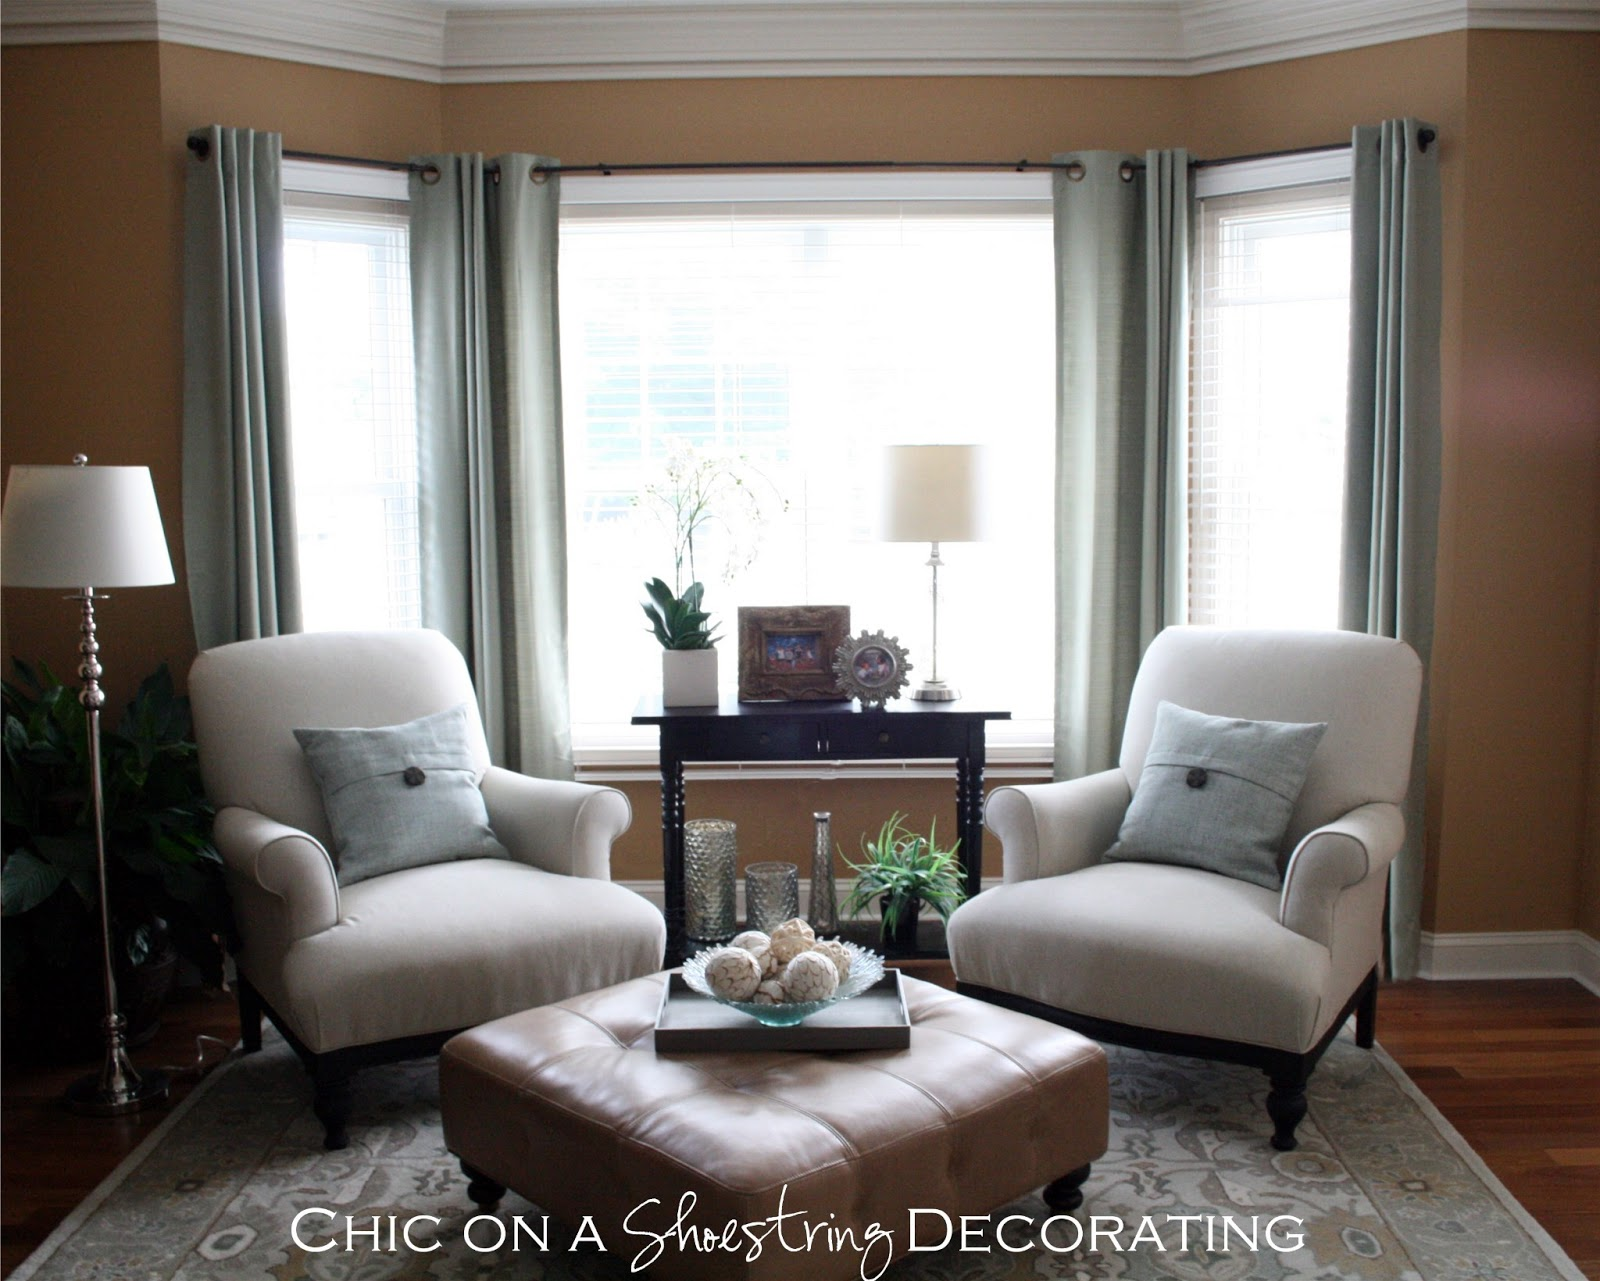 Chic on a Shoestring Decorating: Grand Piano Living Room